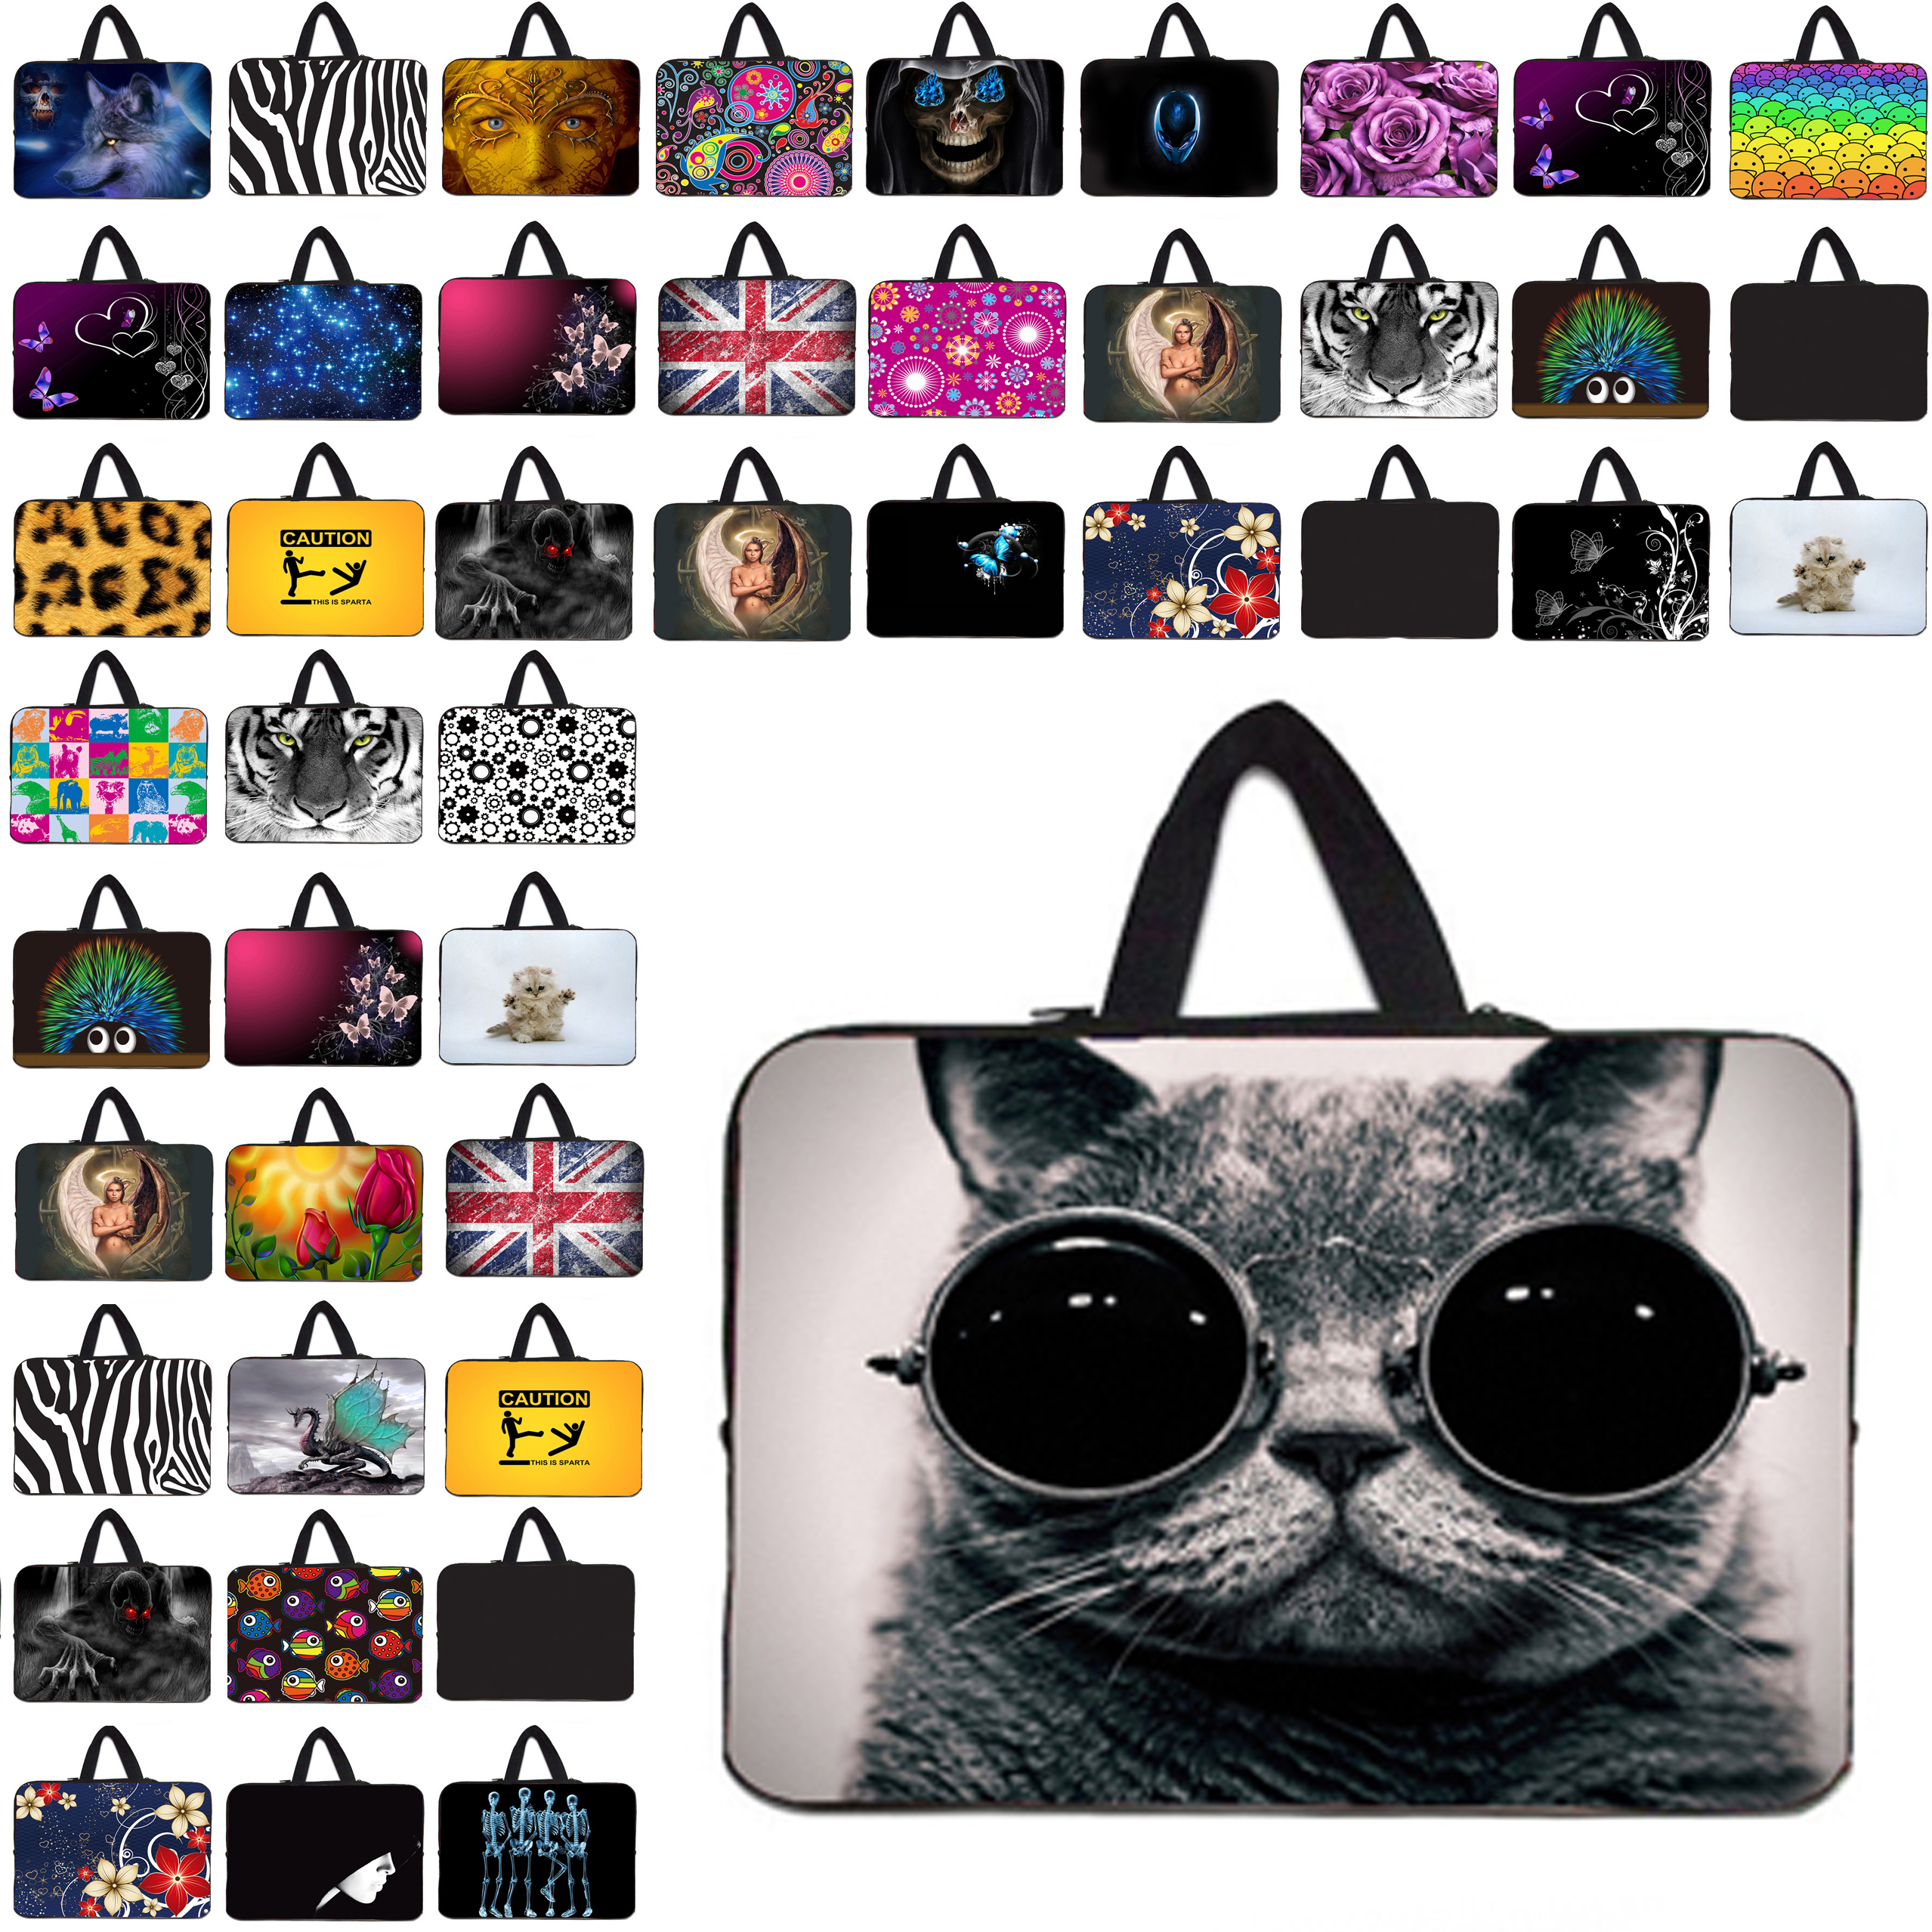 For Samsung Macbook Dell Lenovo Laptop Bag 12 13 14 15 17 inch Handle Sleeve Cases 10 7 13.3 11.6 7.9 inch Neoprene Soft Bags